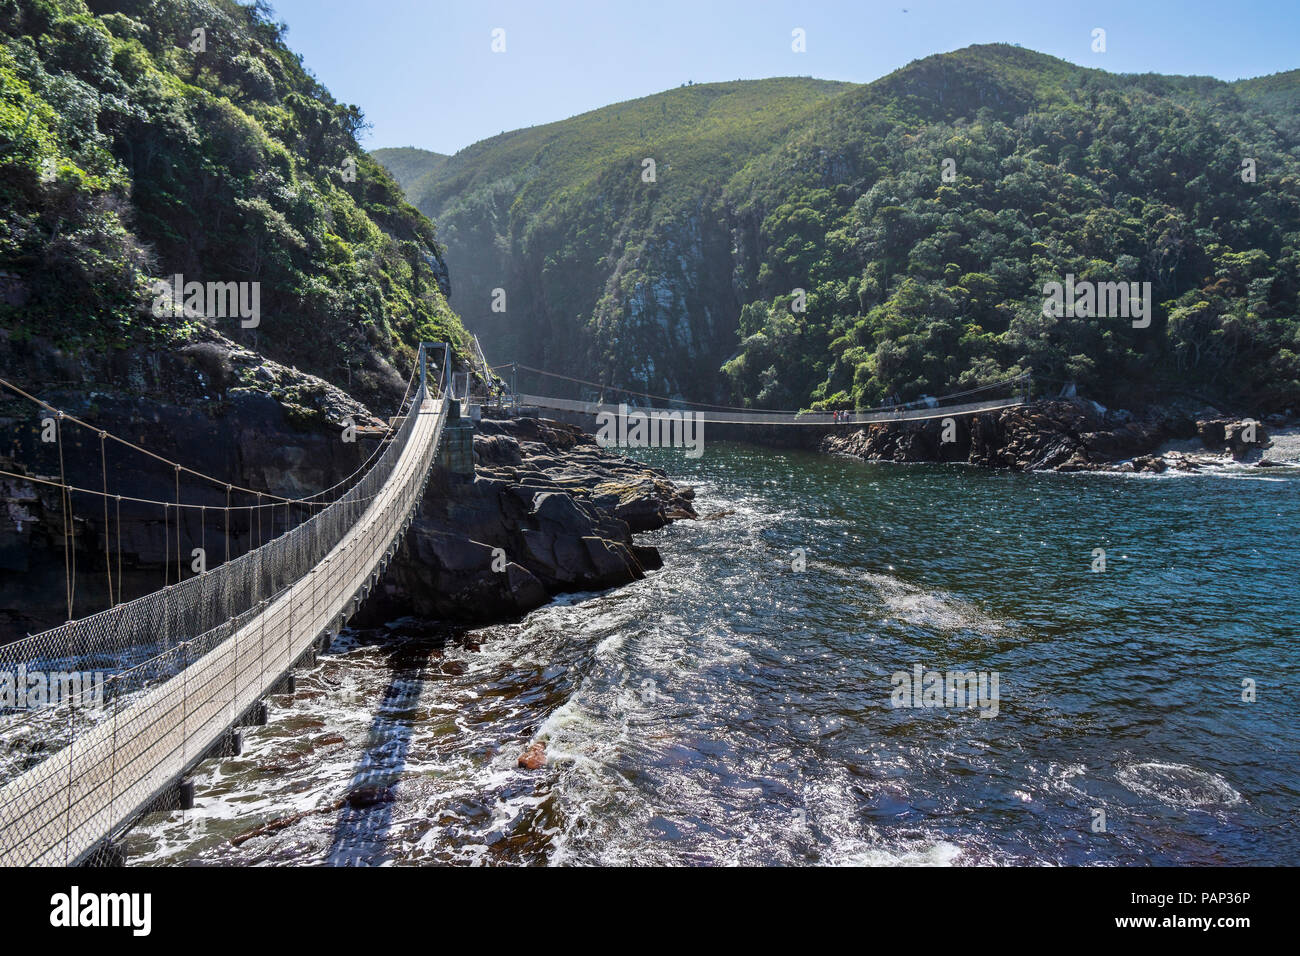 Africa, South Africa, East Cape, Tsitsikamma National Park, Storms River Mouth, suspension bridge - Stock Image